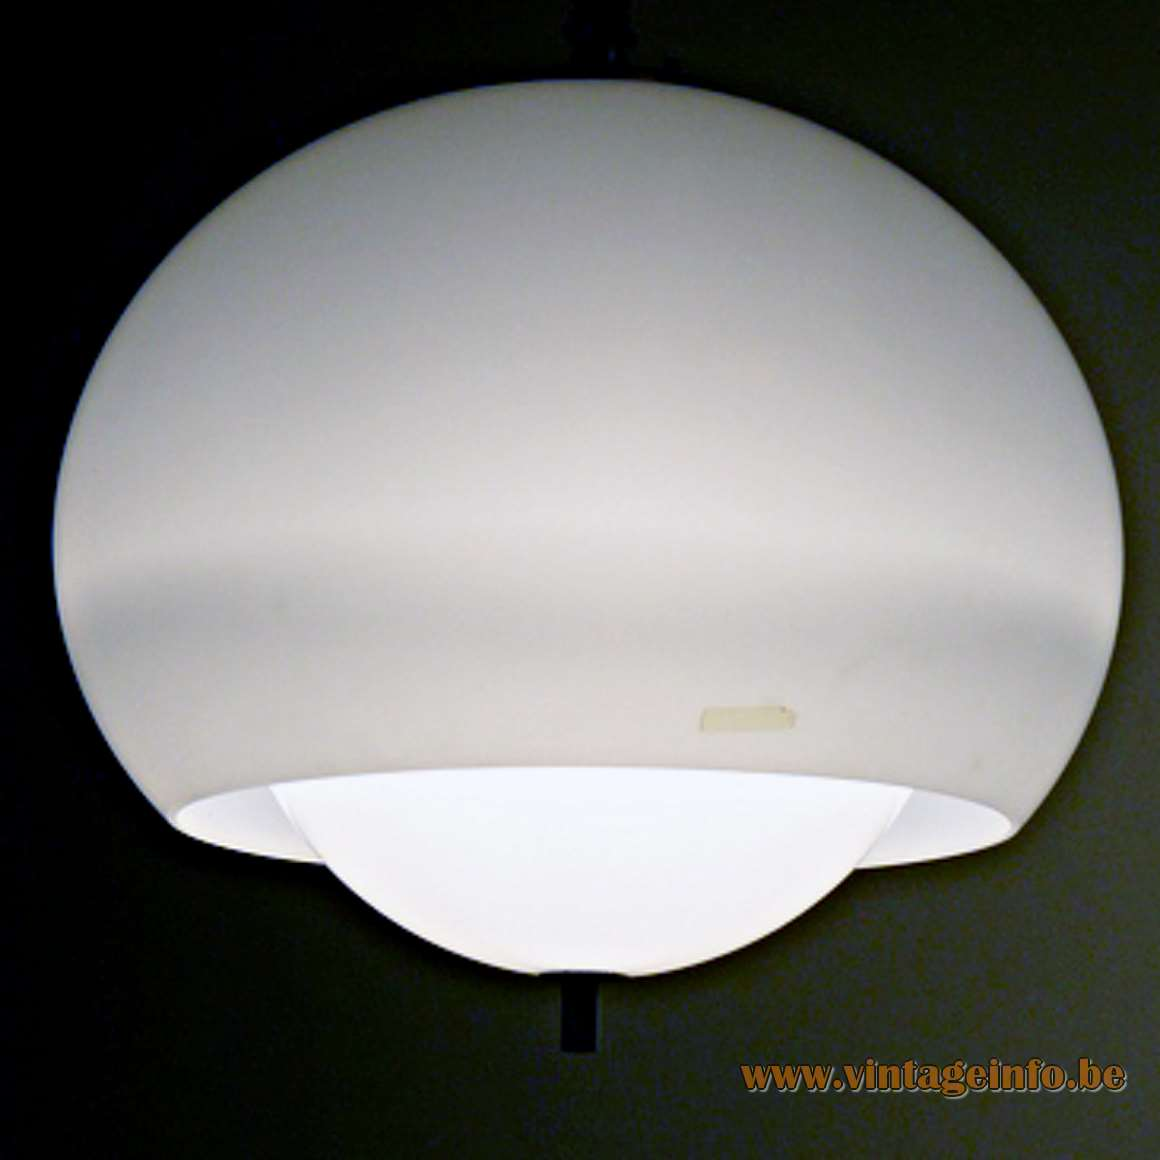 Harvey Guzzini Burgos Pendant Lamp rise & fall round acrylic perpex lampshade white diffuser 1970s small version